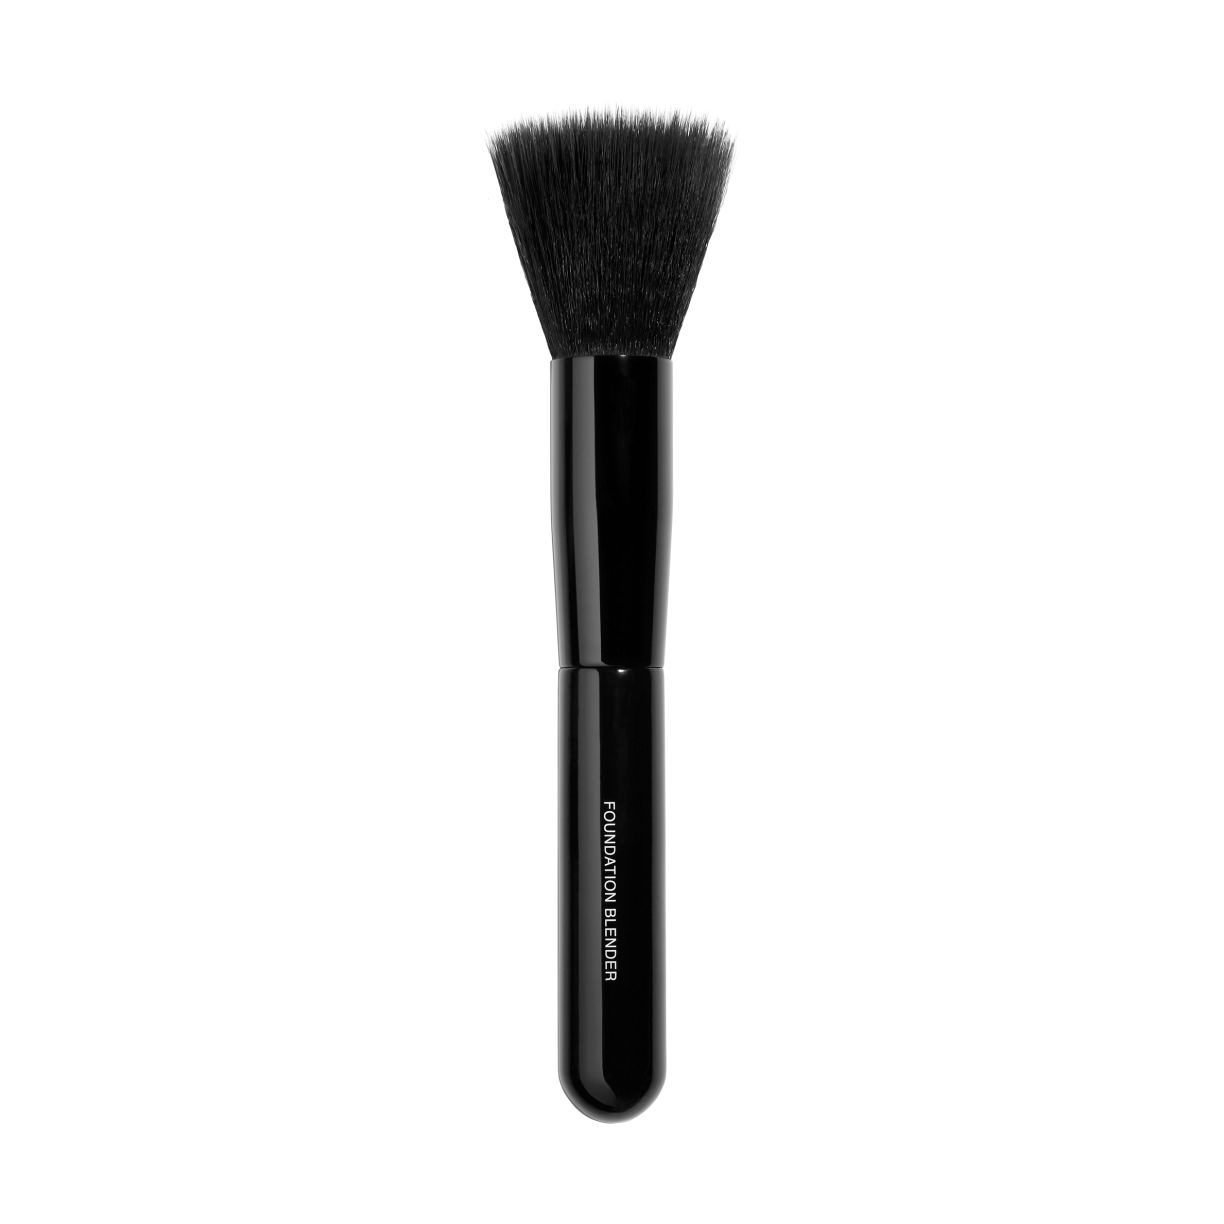 PINCEAU ESTOMPE TEINT FOUNDATION-BLENDING BRUSH